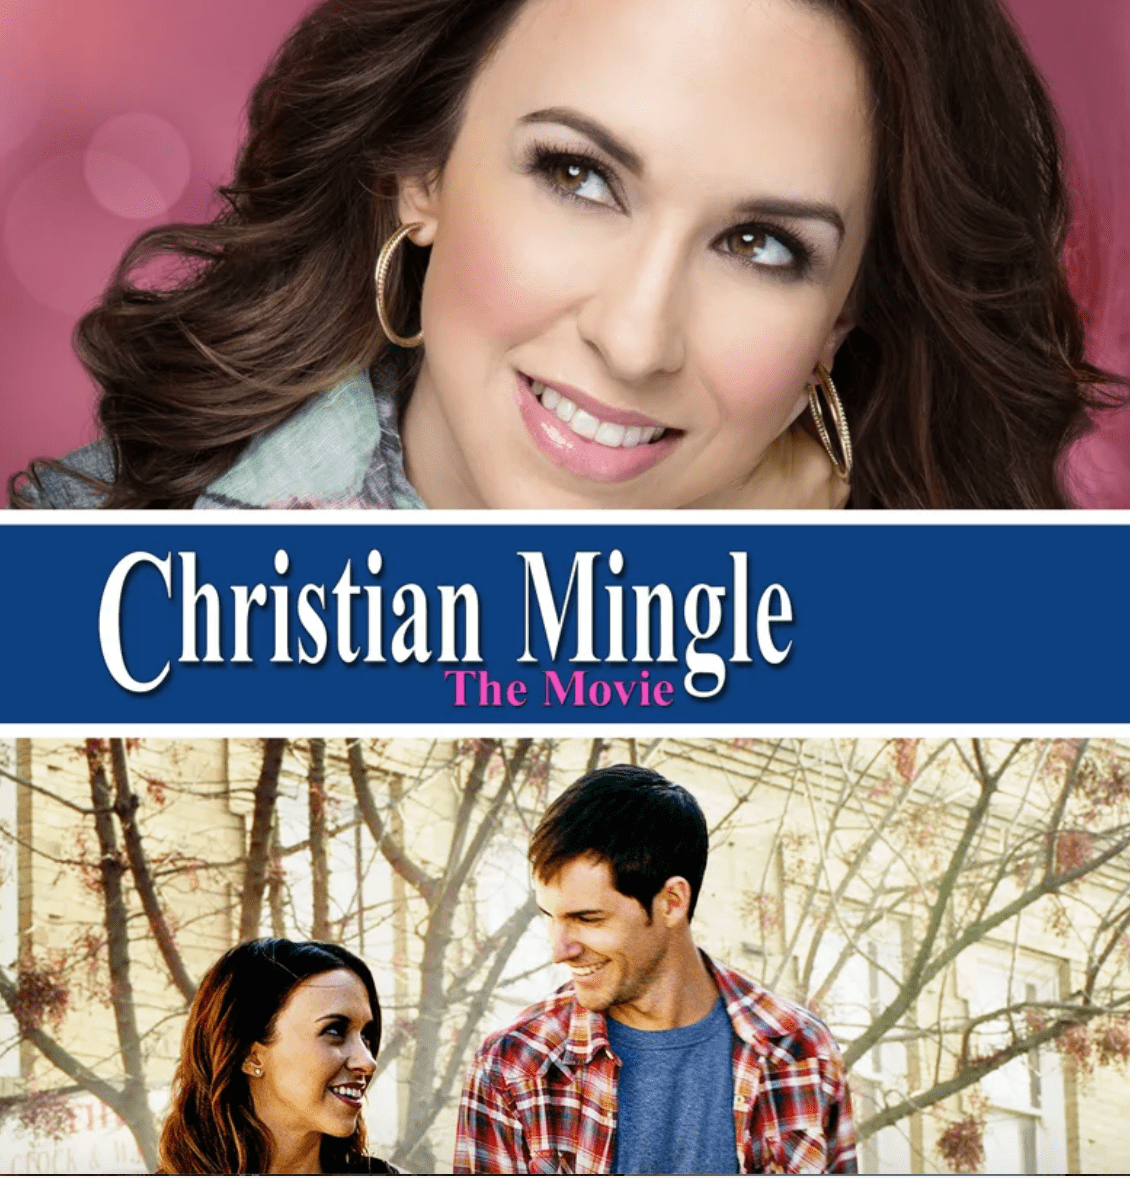 christian mingle pureflix